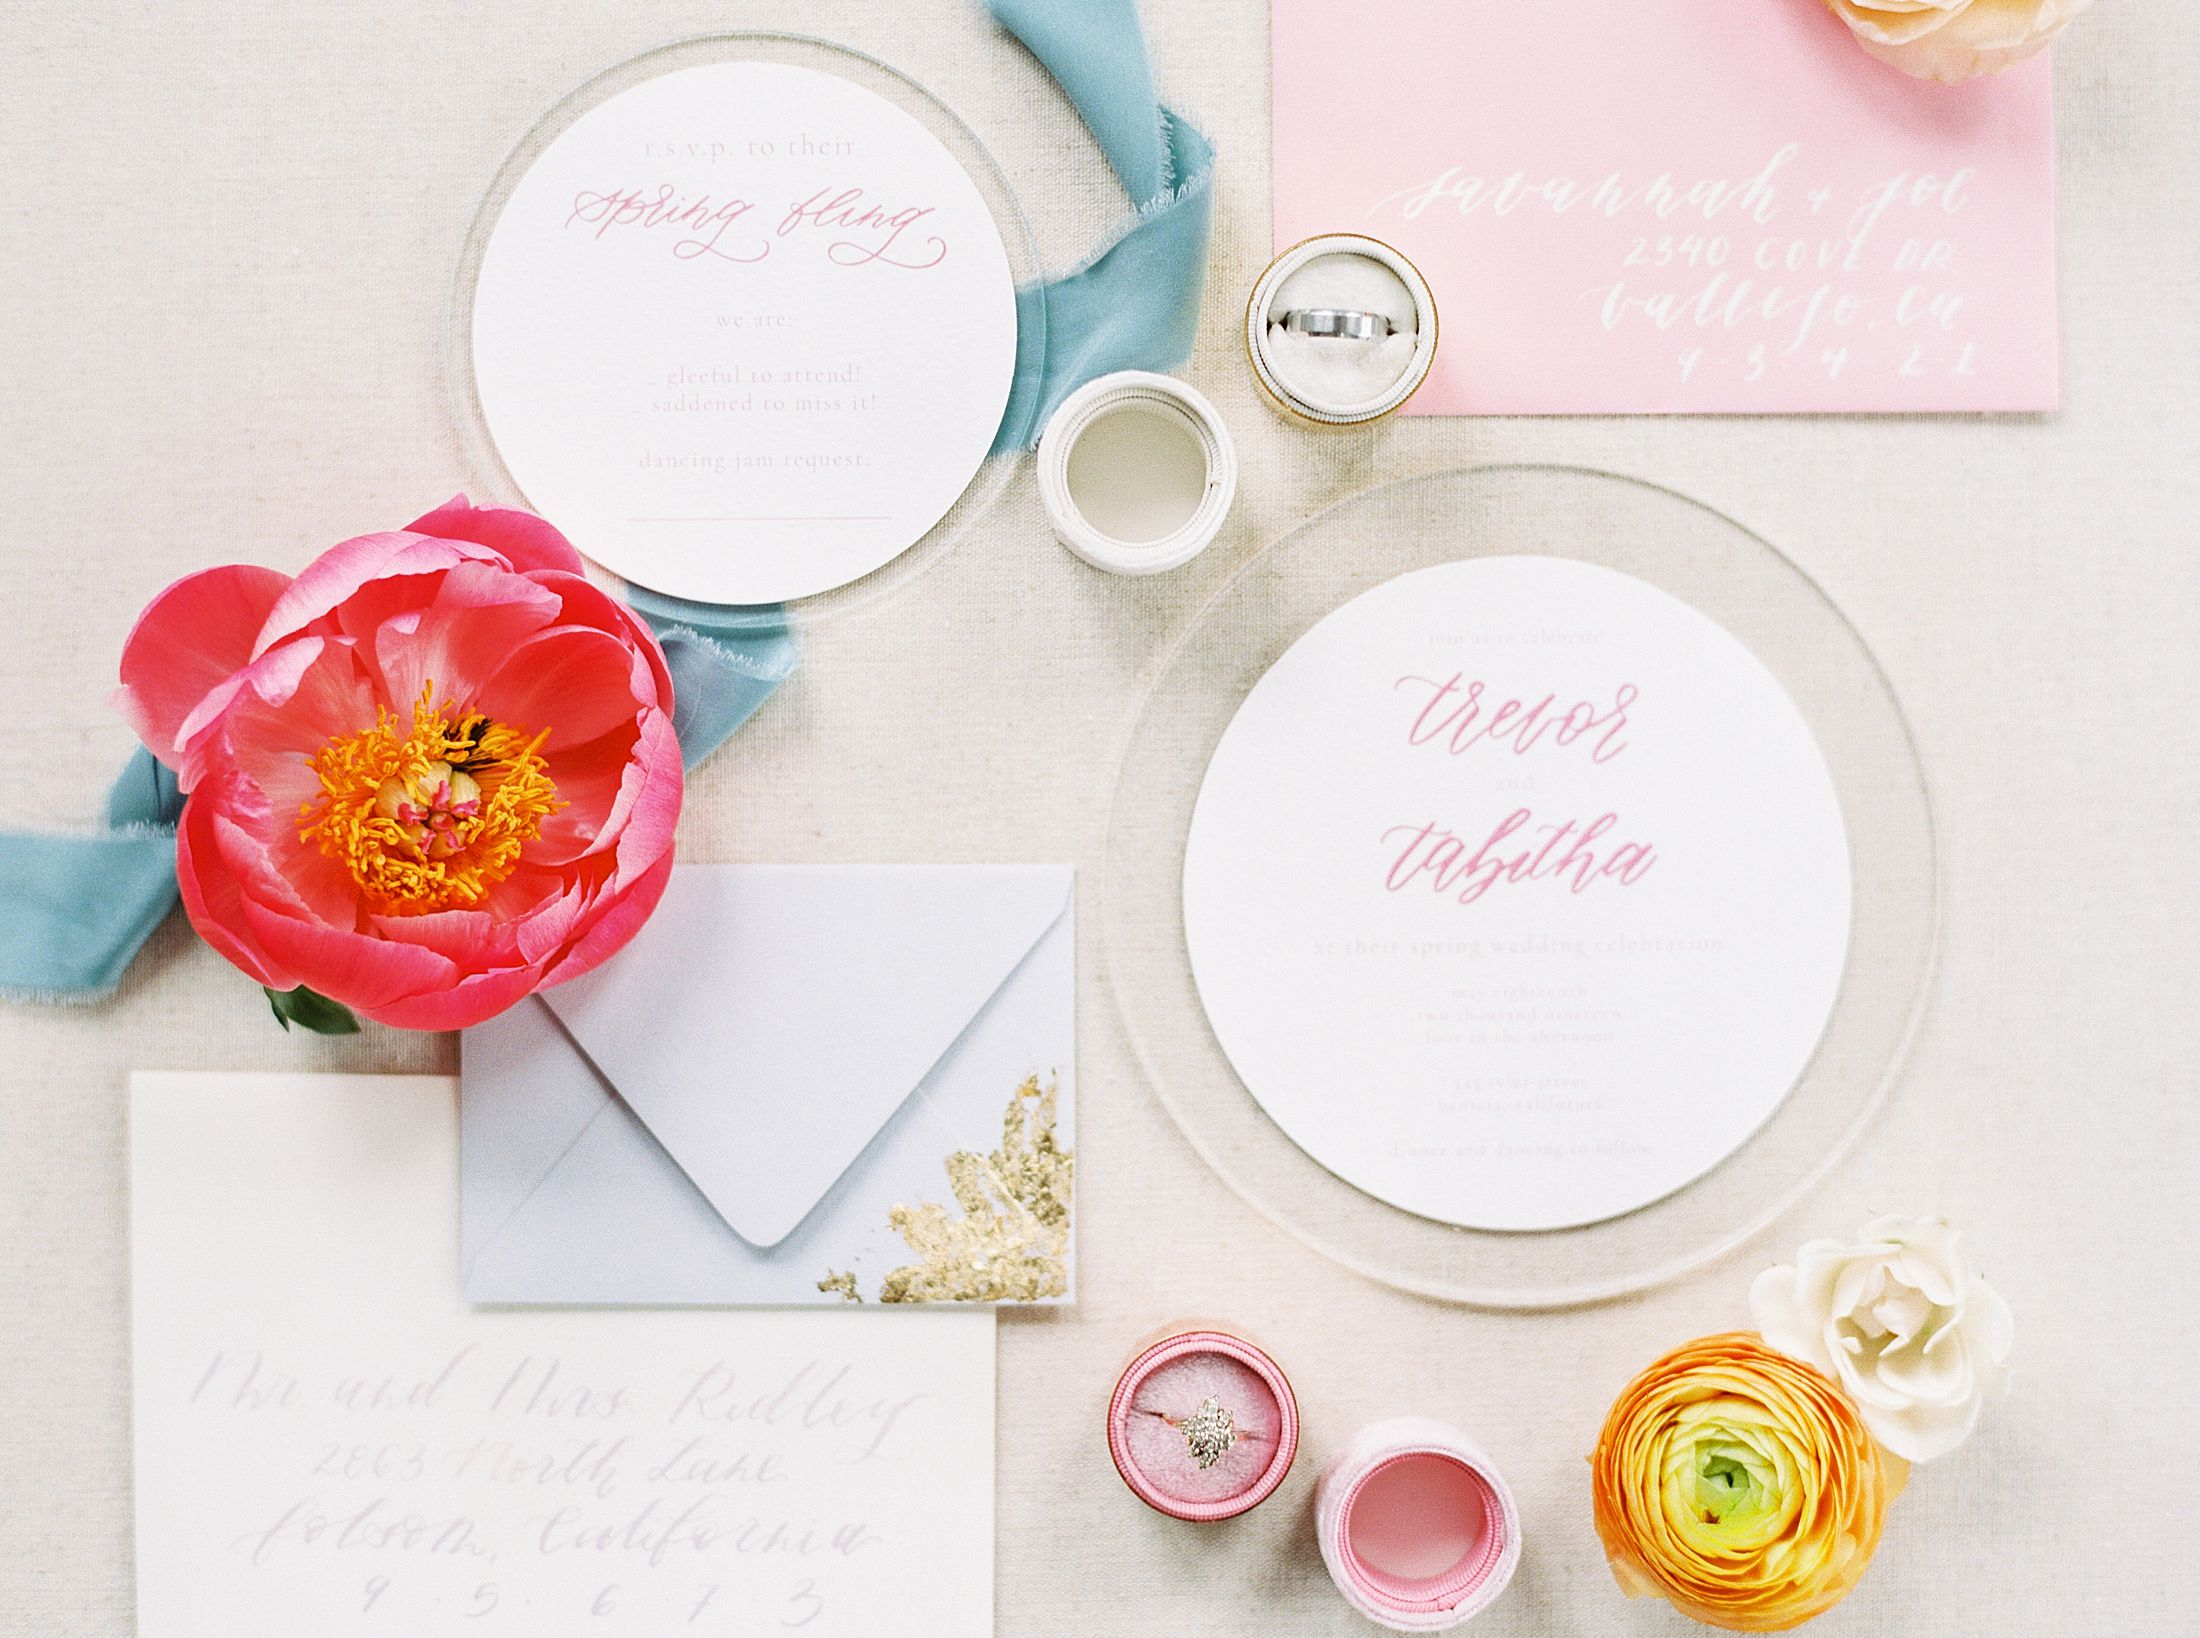 Bay Area Spring Wedding Inspiration - Ashley Baumgartner - Inspired By This - Party Crush Studio and Lens of Lenox Videography - Bay Area Wedding Photography_0062.jpg